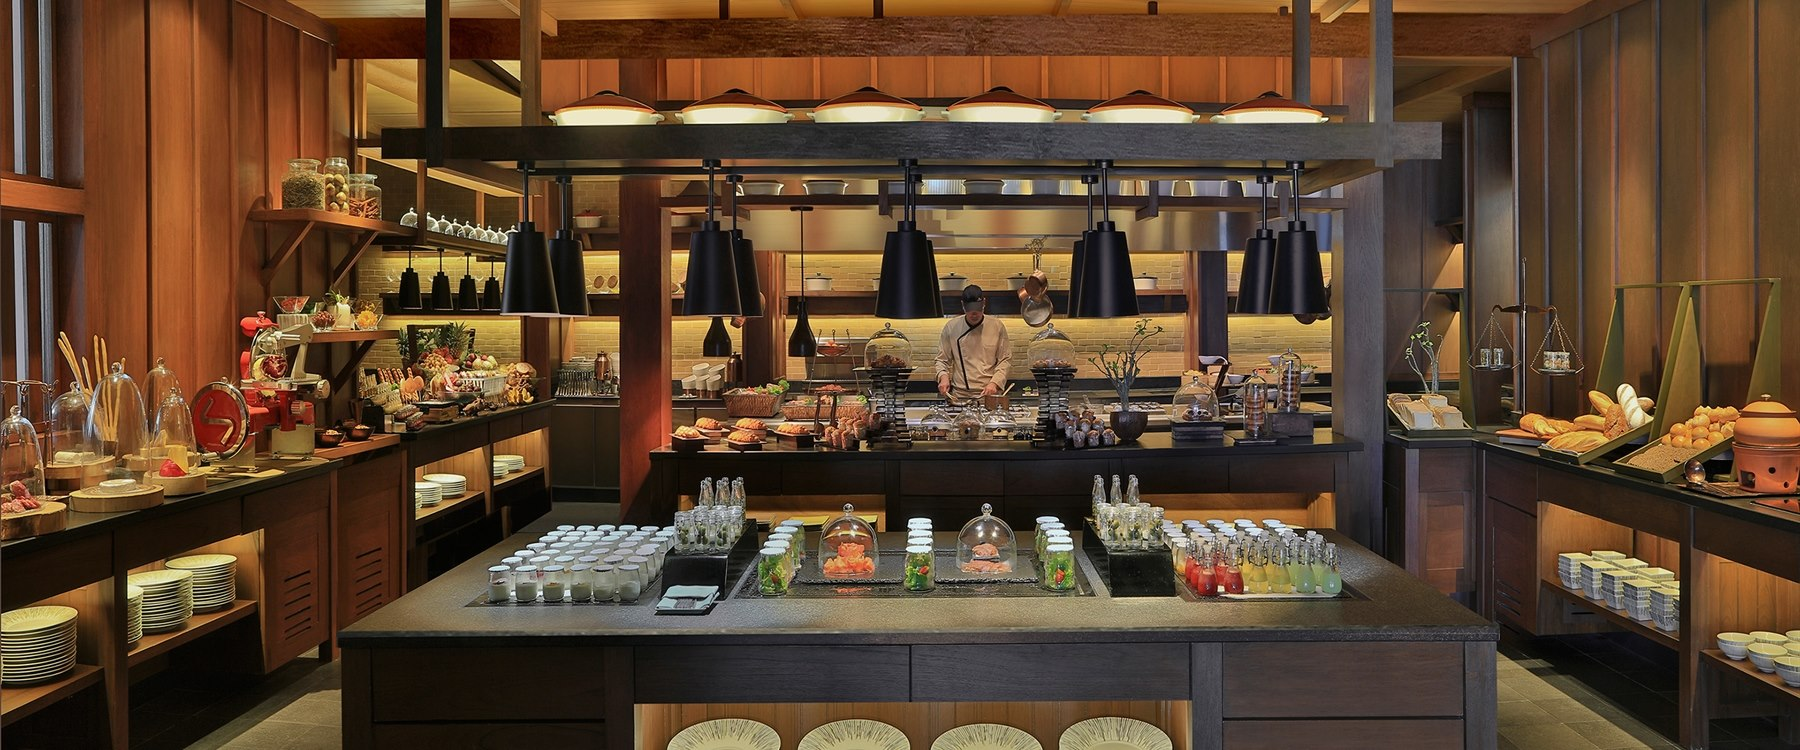 Breakfast at Anantara Layan Phuket Resort, Thailand